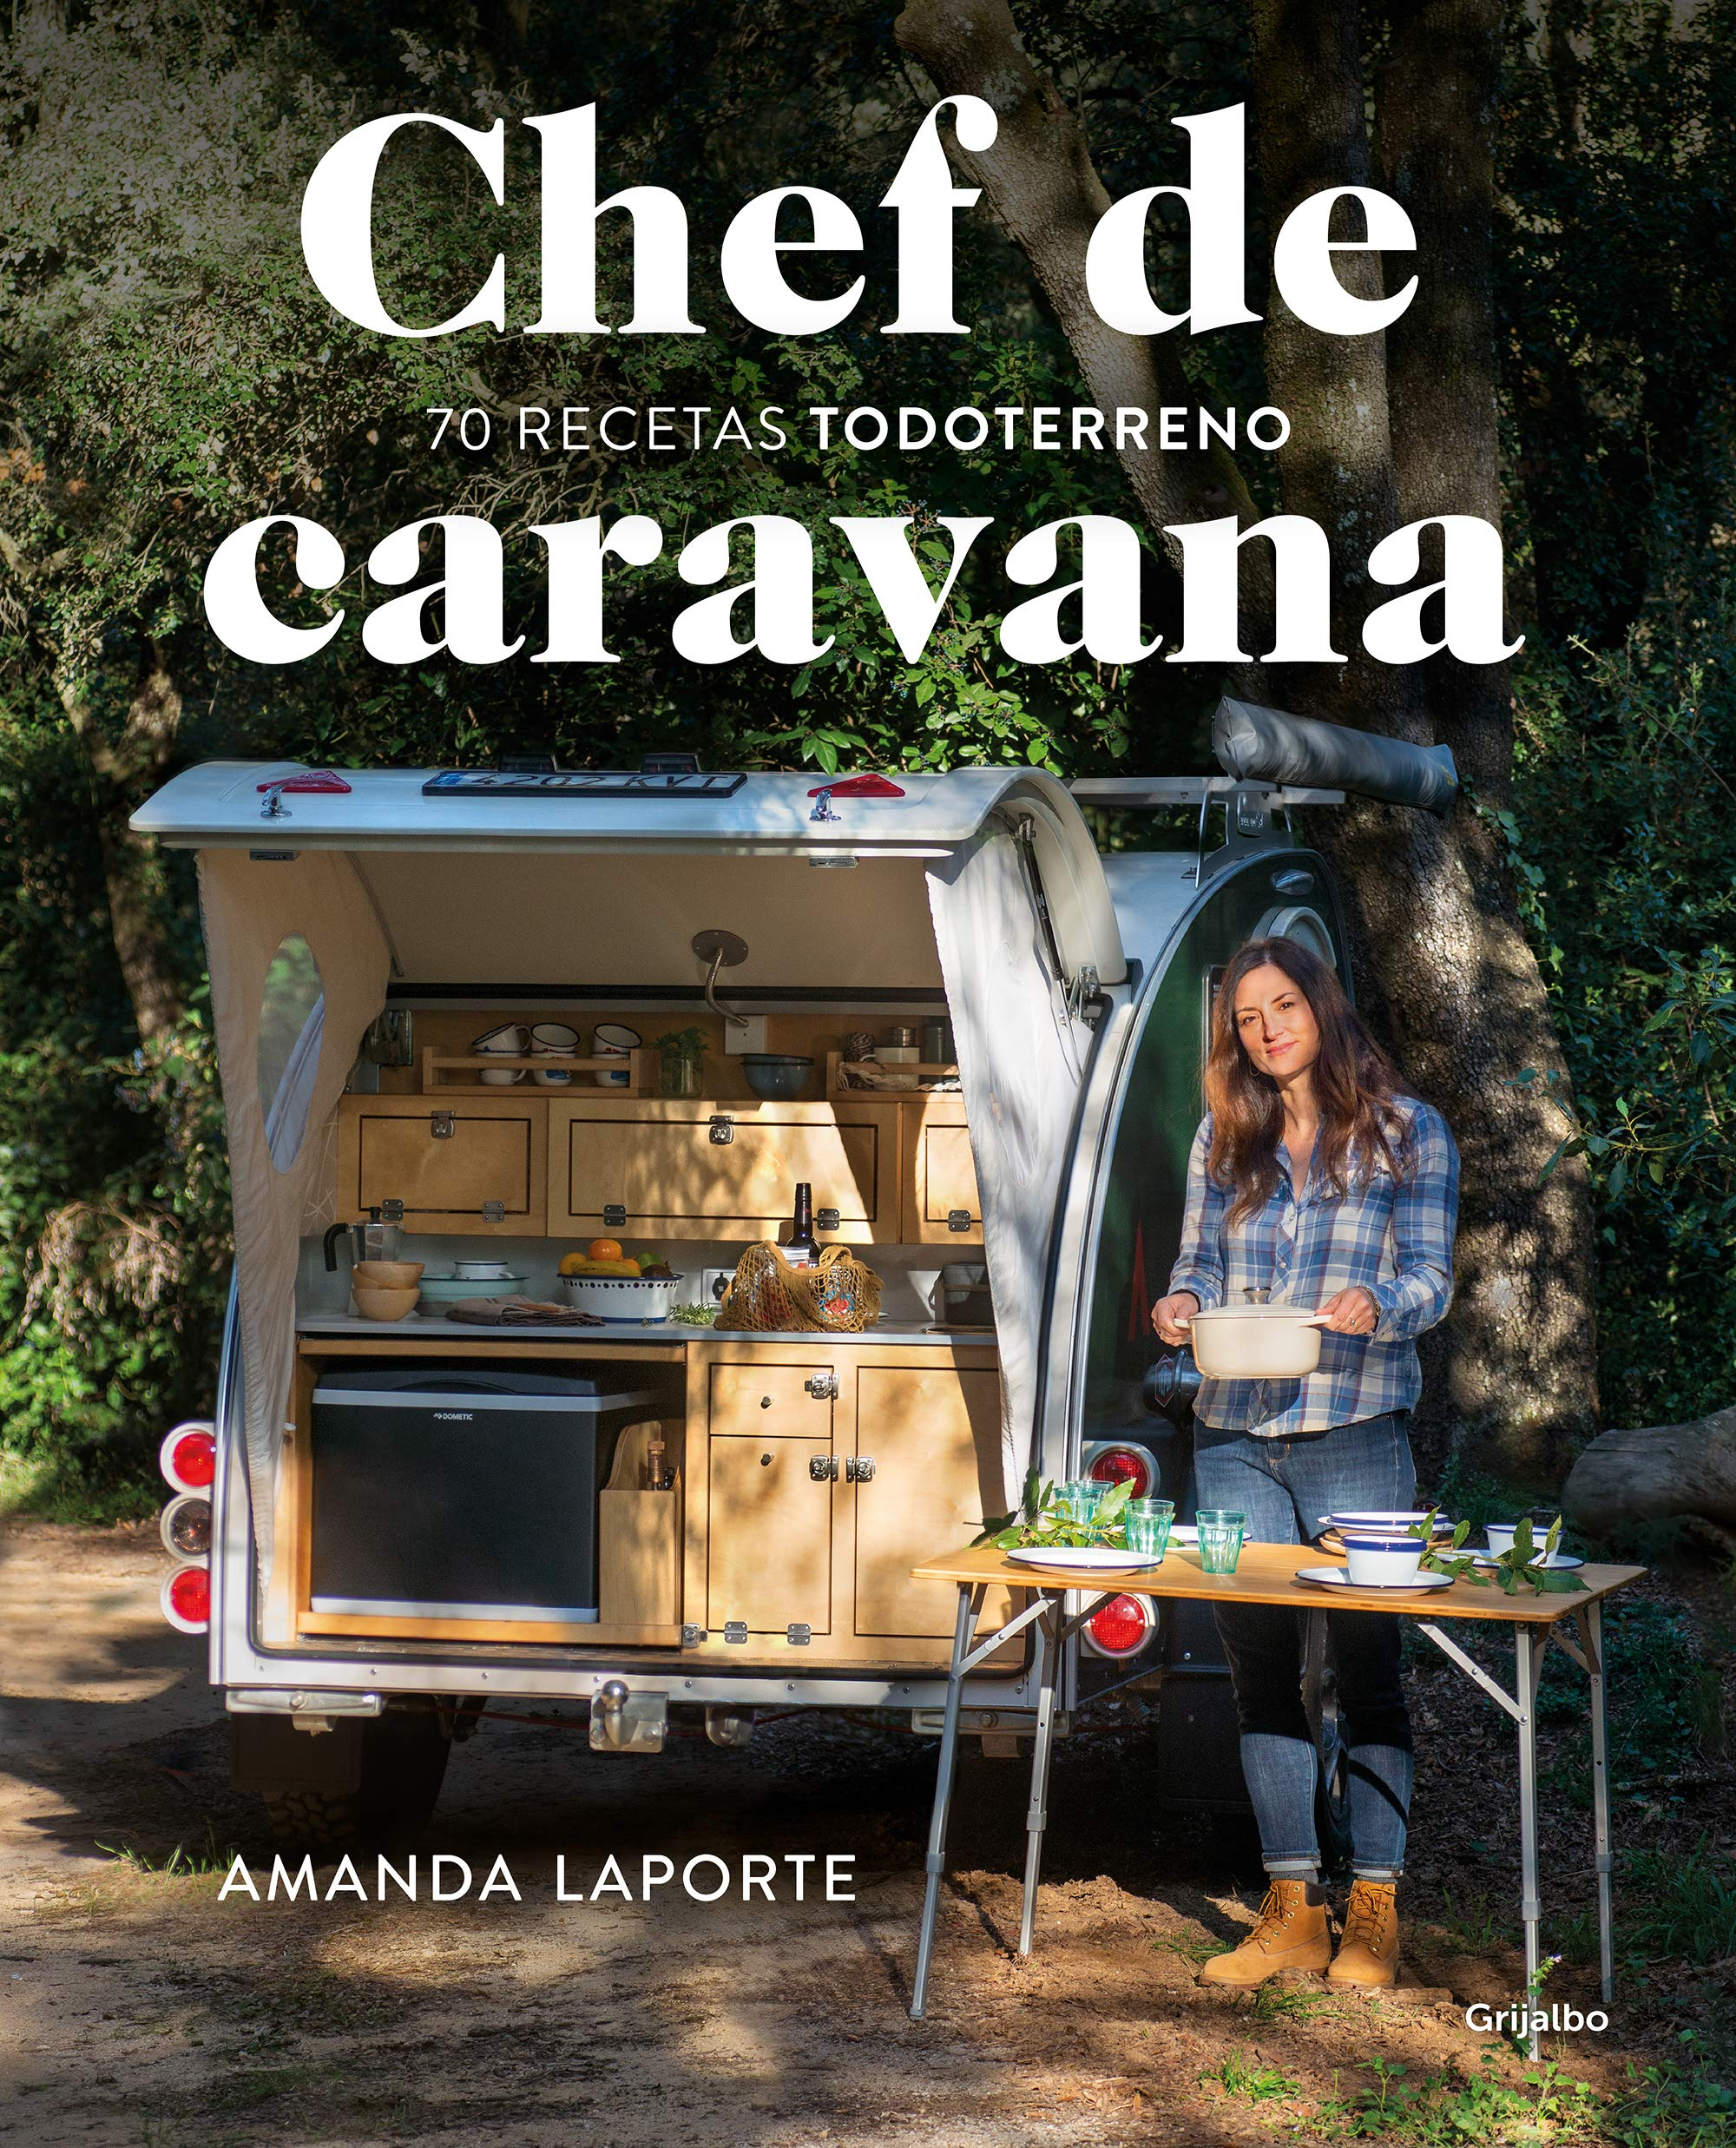 Chef de carvana